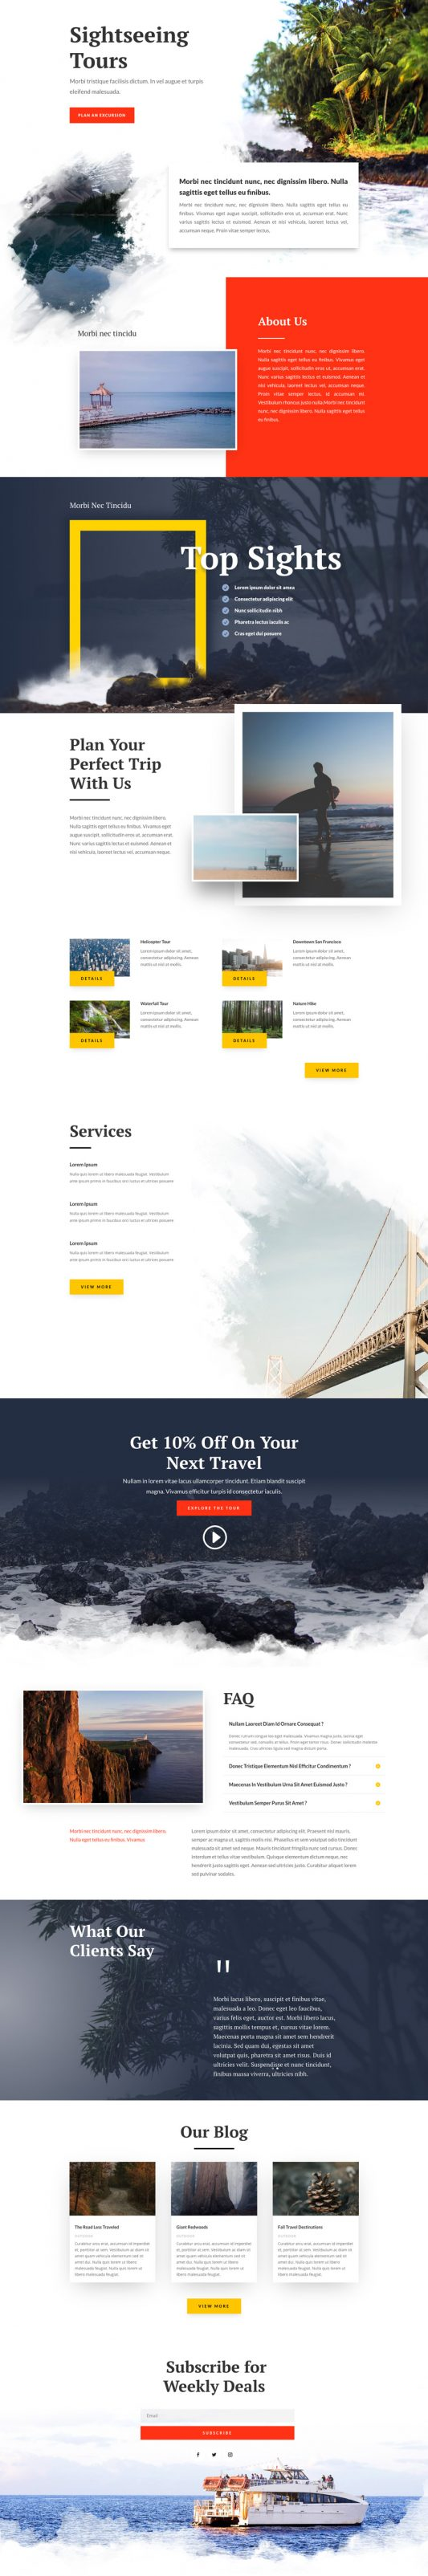 Sightseeing Web Design 6